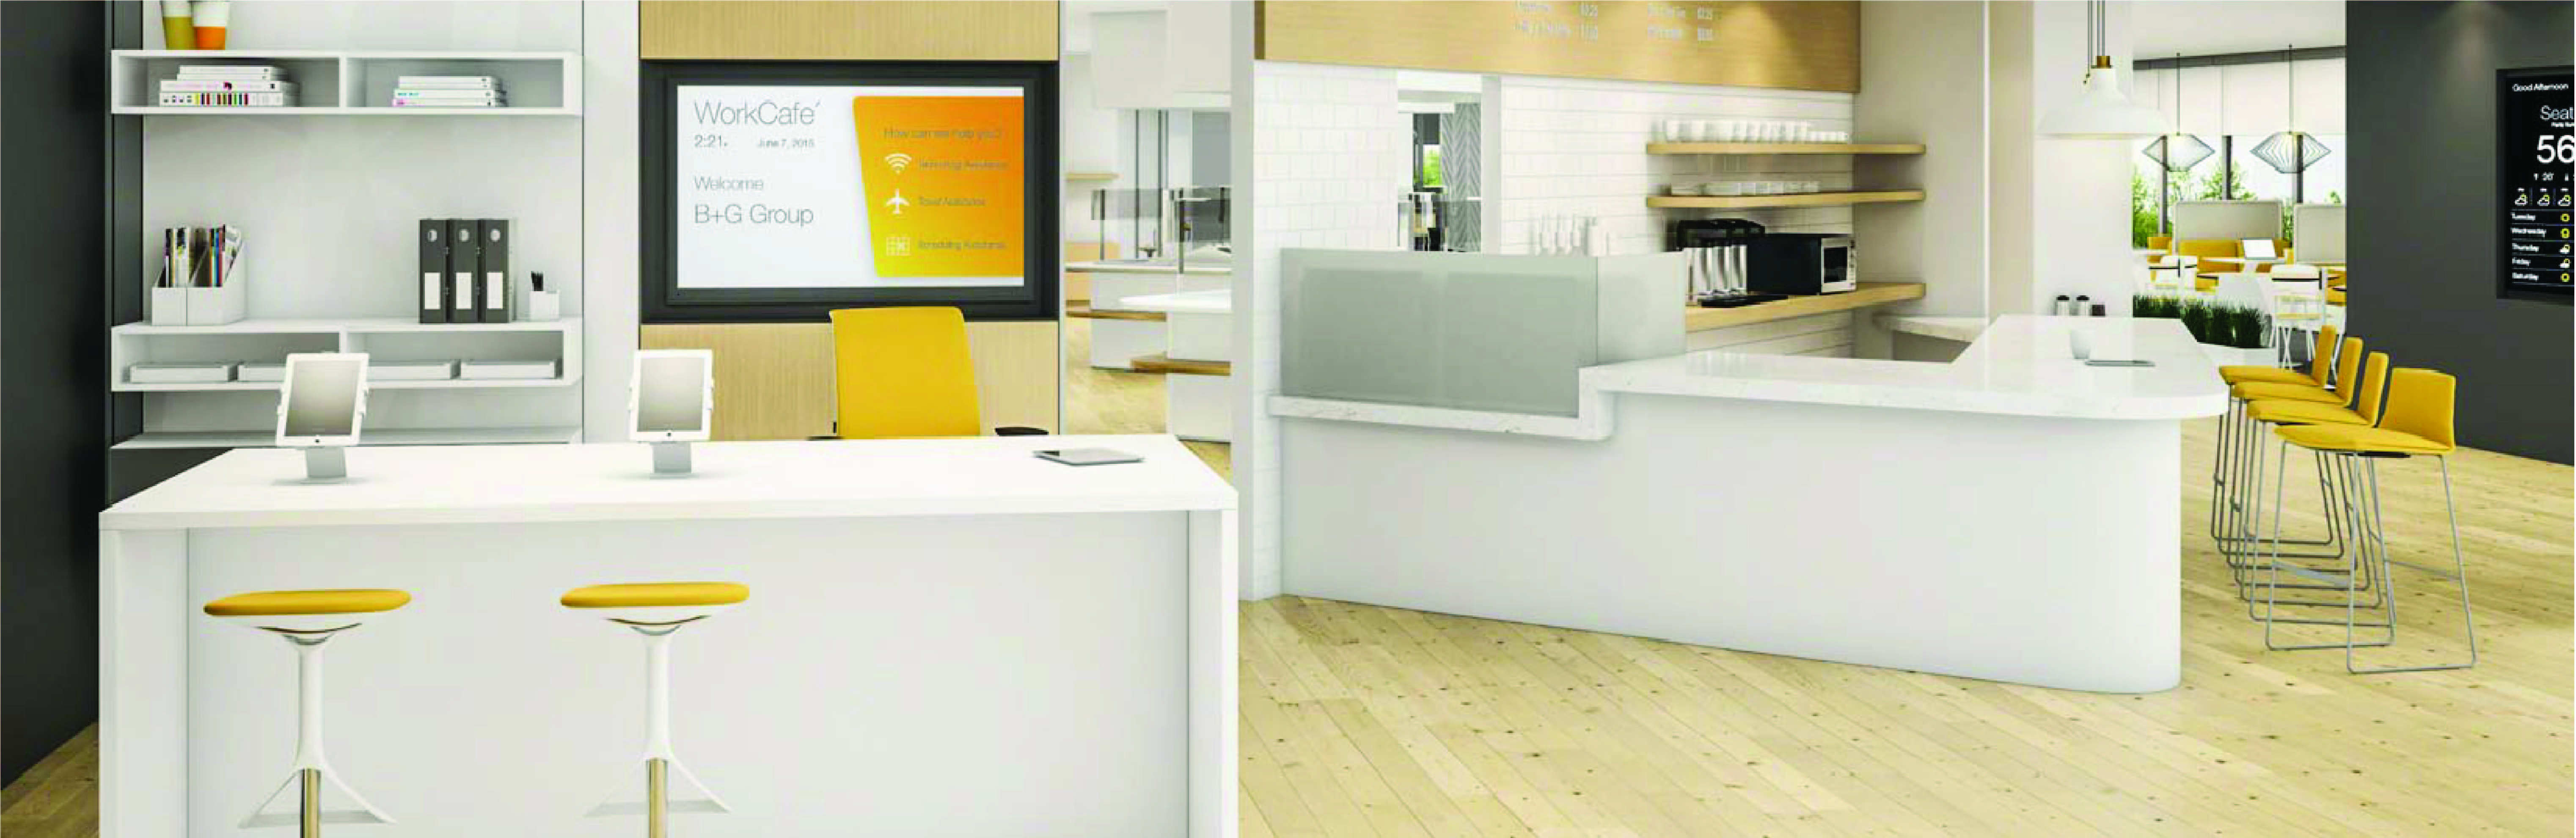 Work Cafe Resource Space